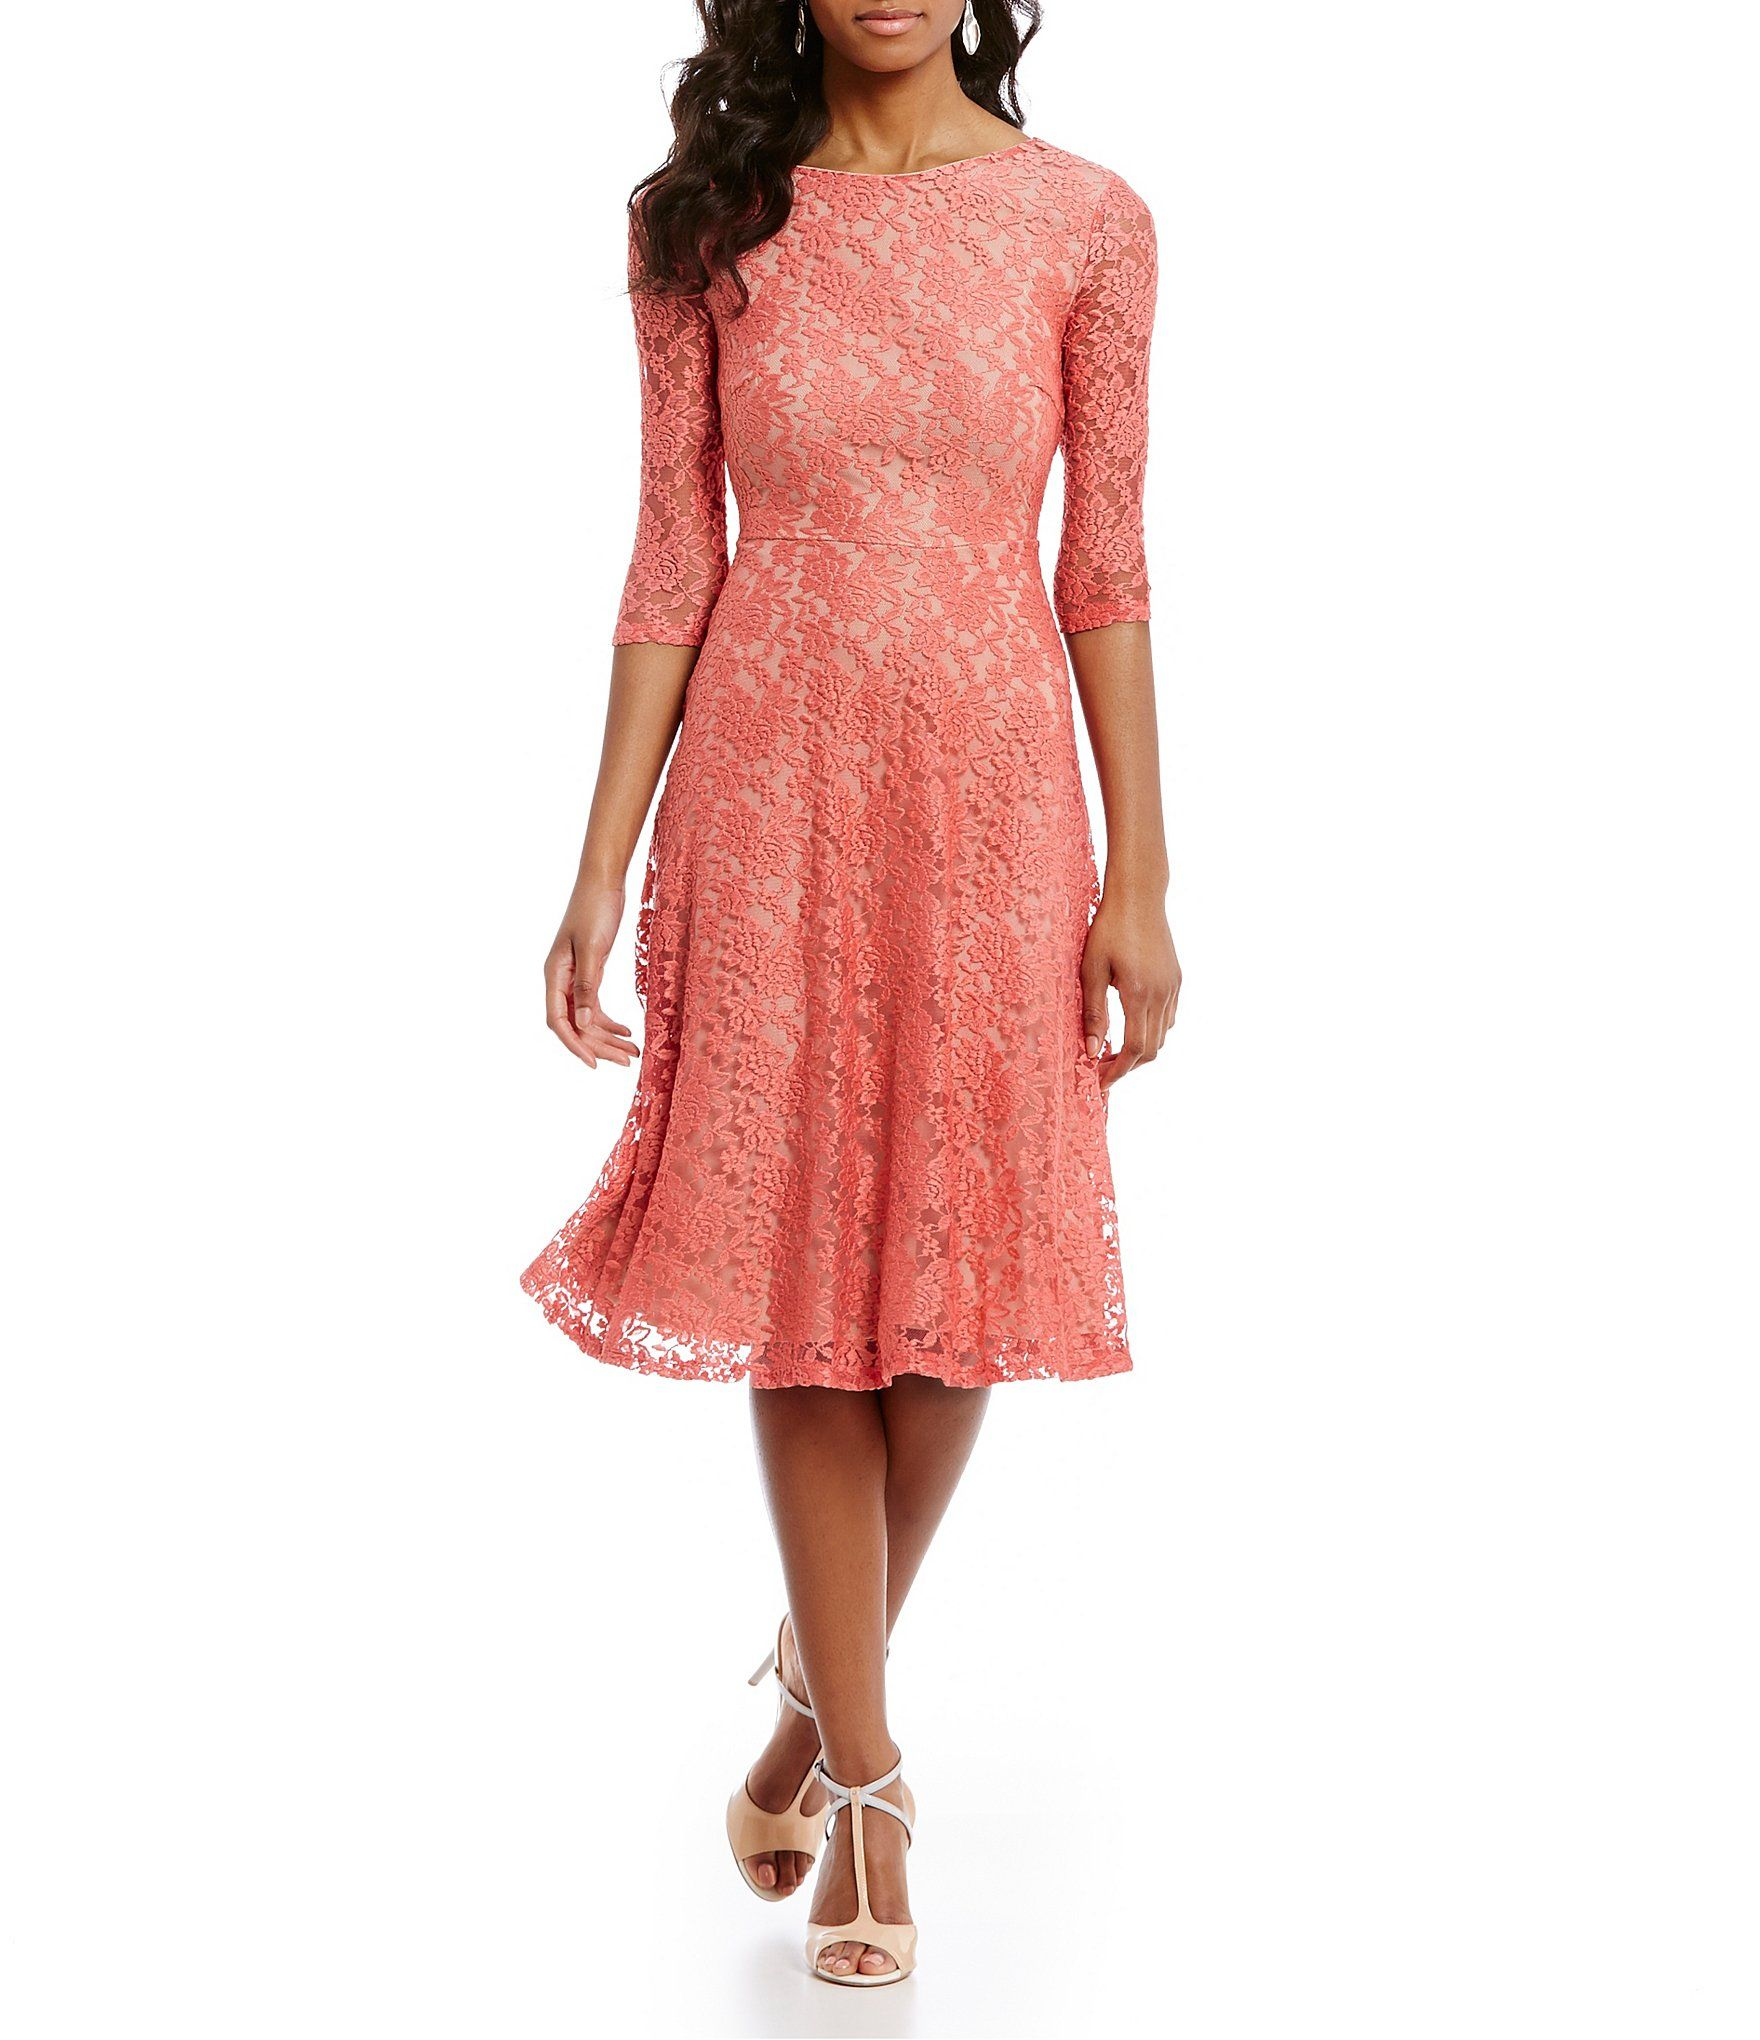 6a4ab0c0fa Shop for Sangria Tea-Length Midi Lace Fit-and-Flare Dress at Dillards.com.  Visit Dillards.com to find clothing